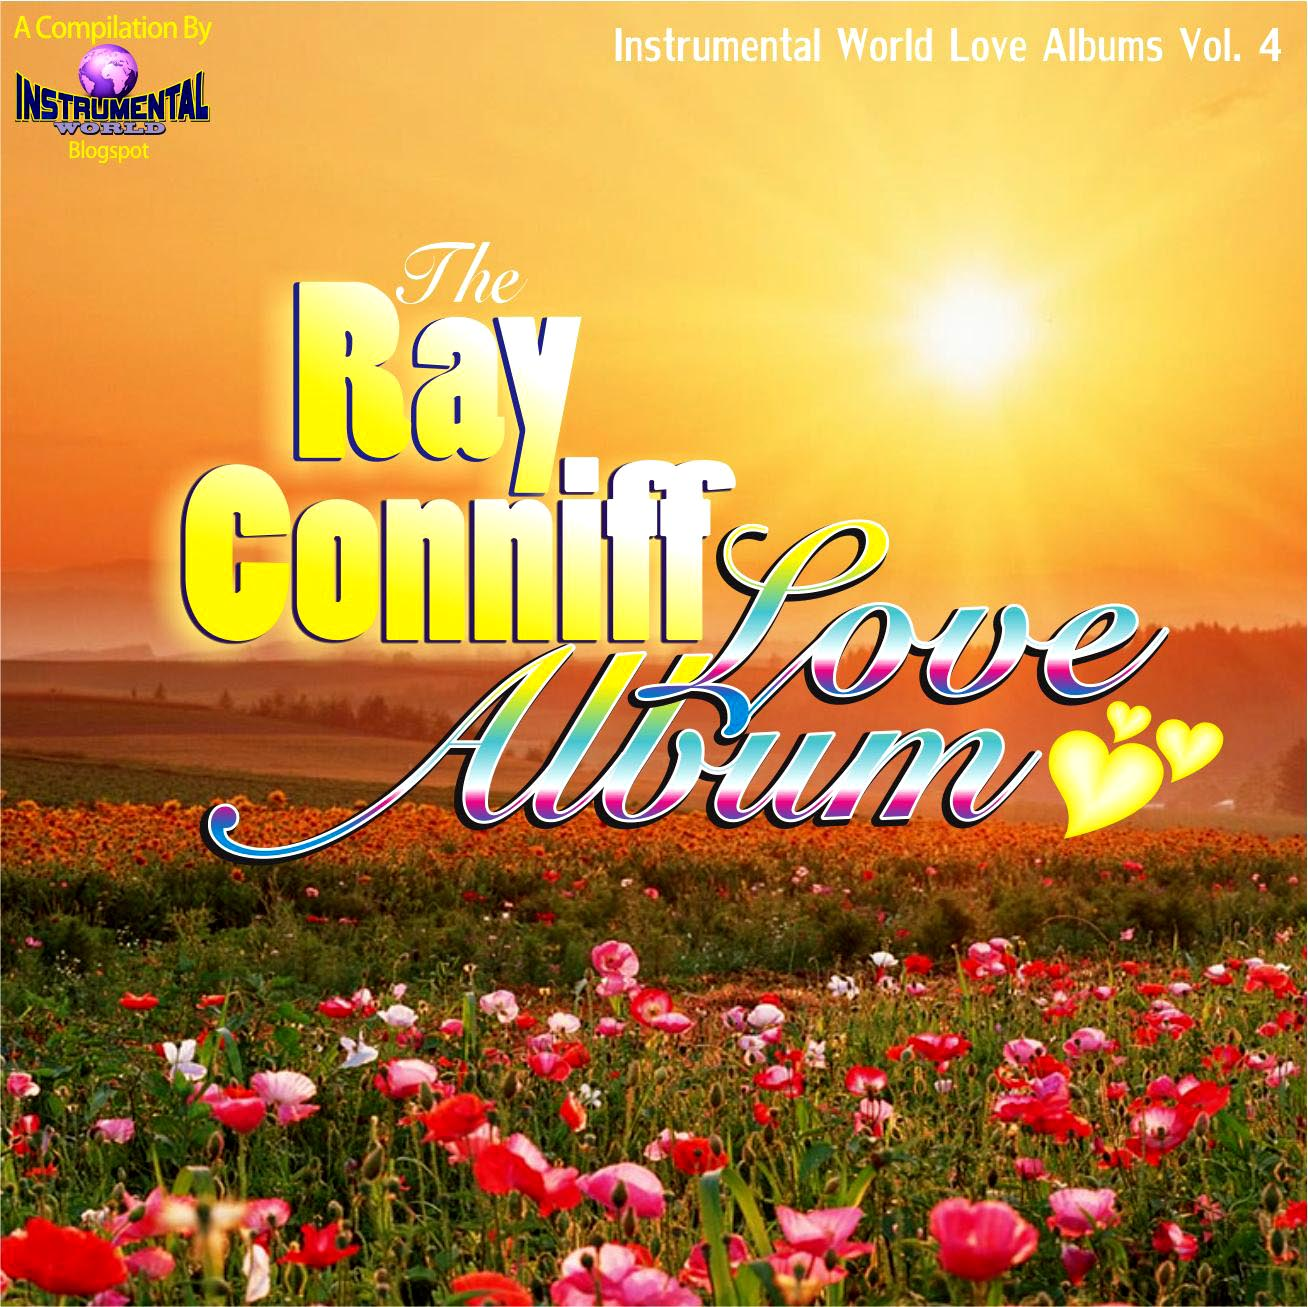 cd Instrumental World Love Album Vol.4  R. connif The+Love+Album+4